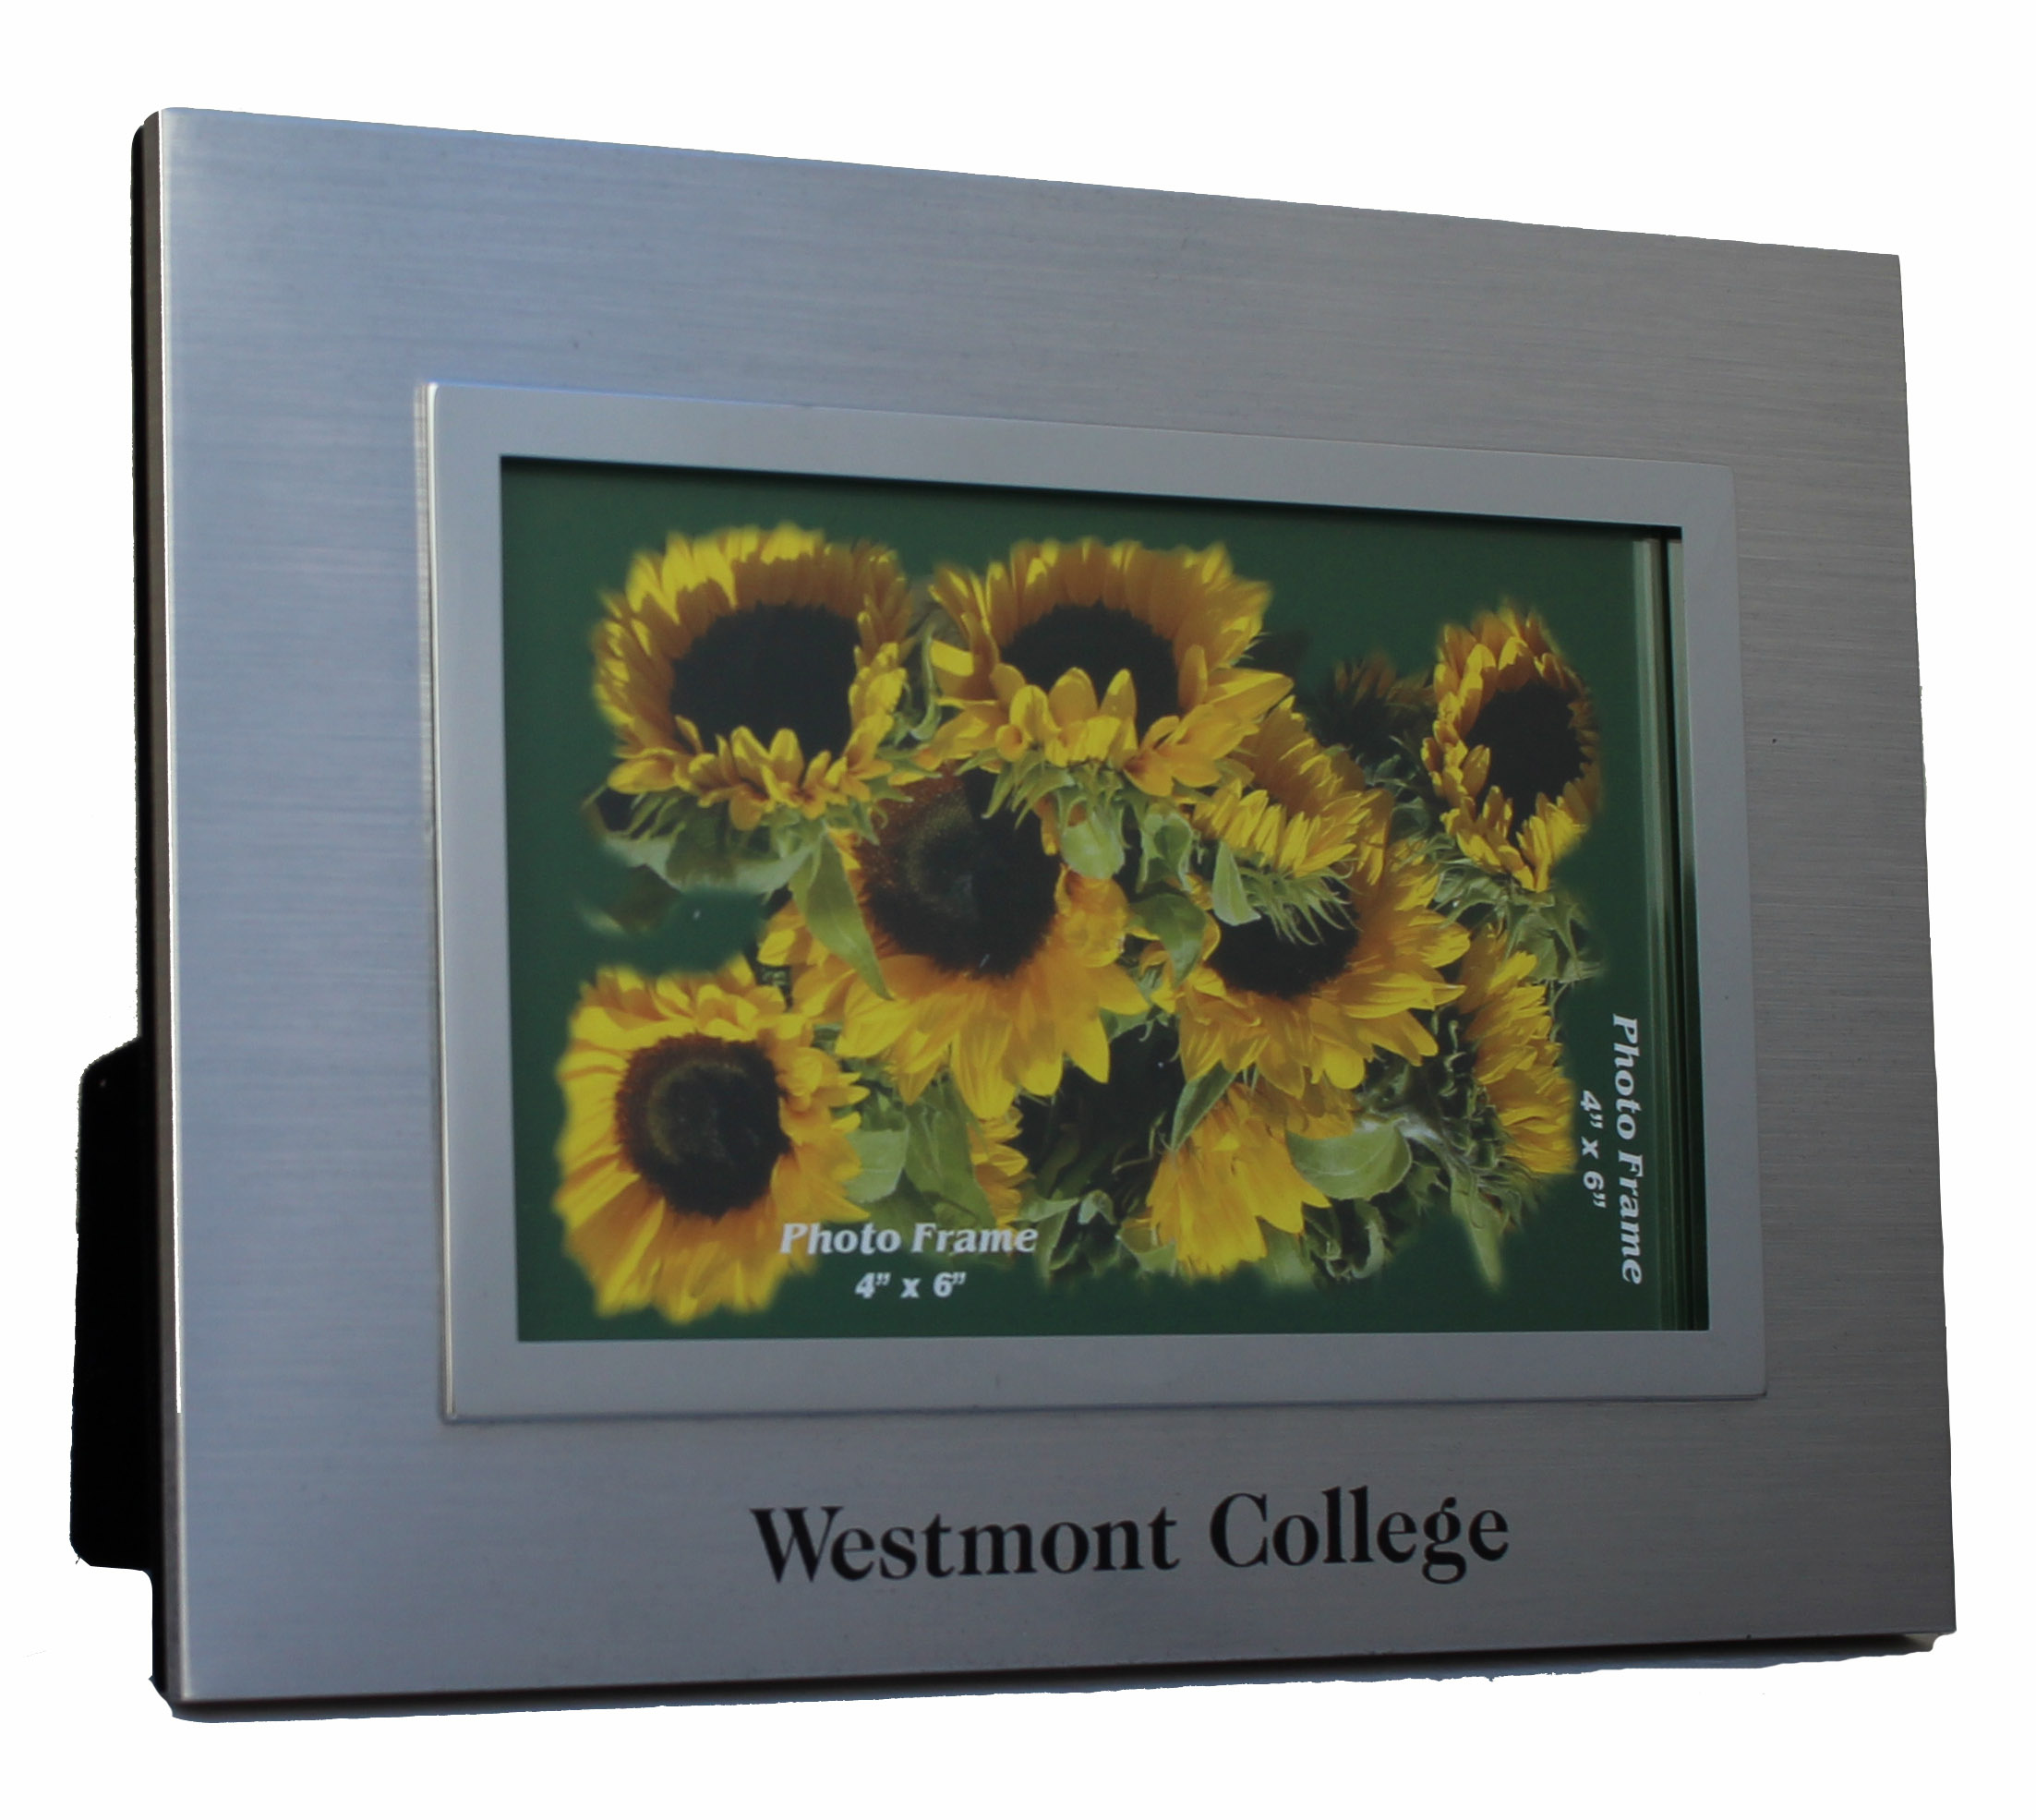 Image for the Spirit St. Pierre Picture Frame product